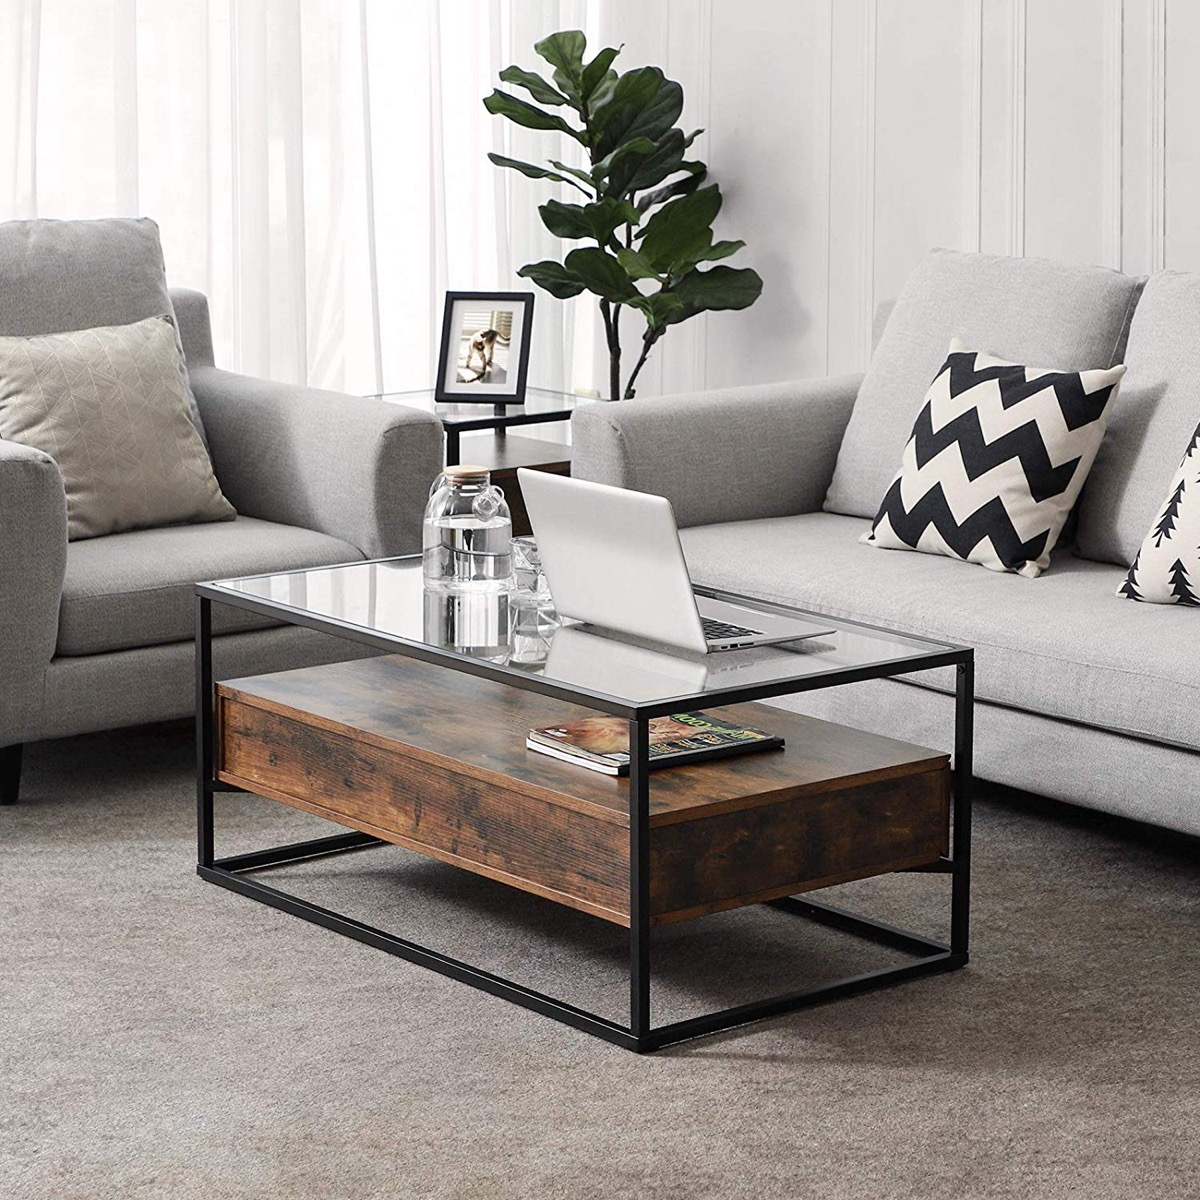 51 Glass Coffee Tables That Every Living Room Craves